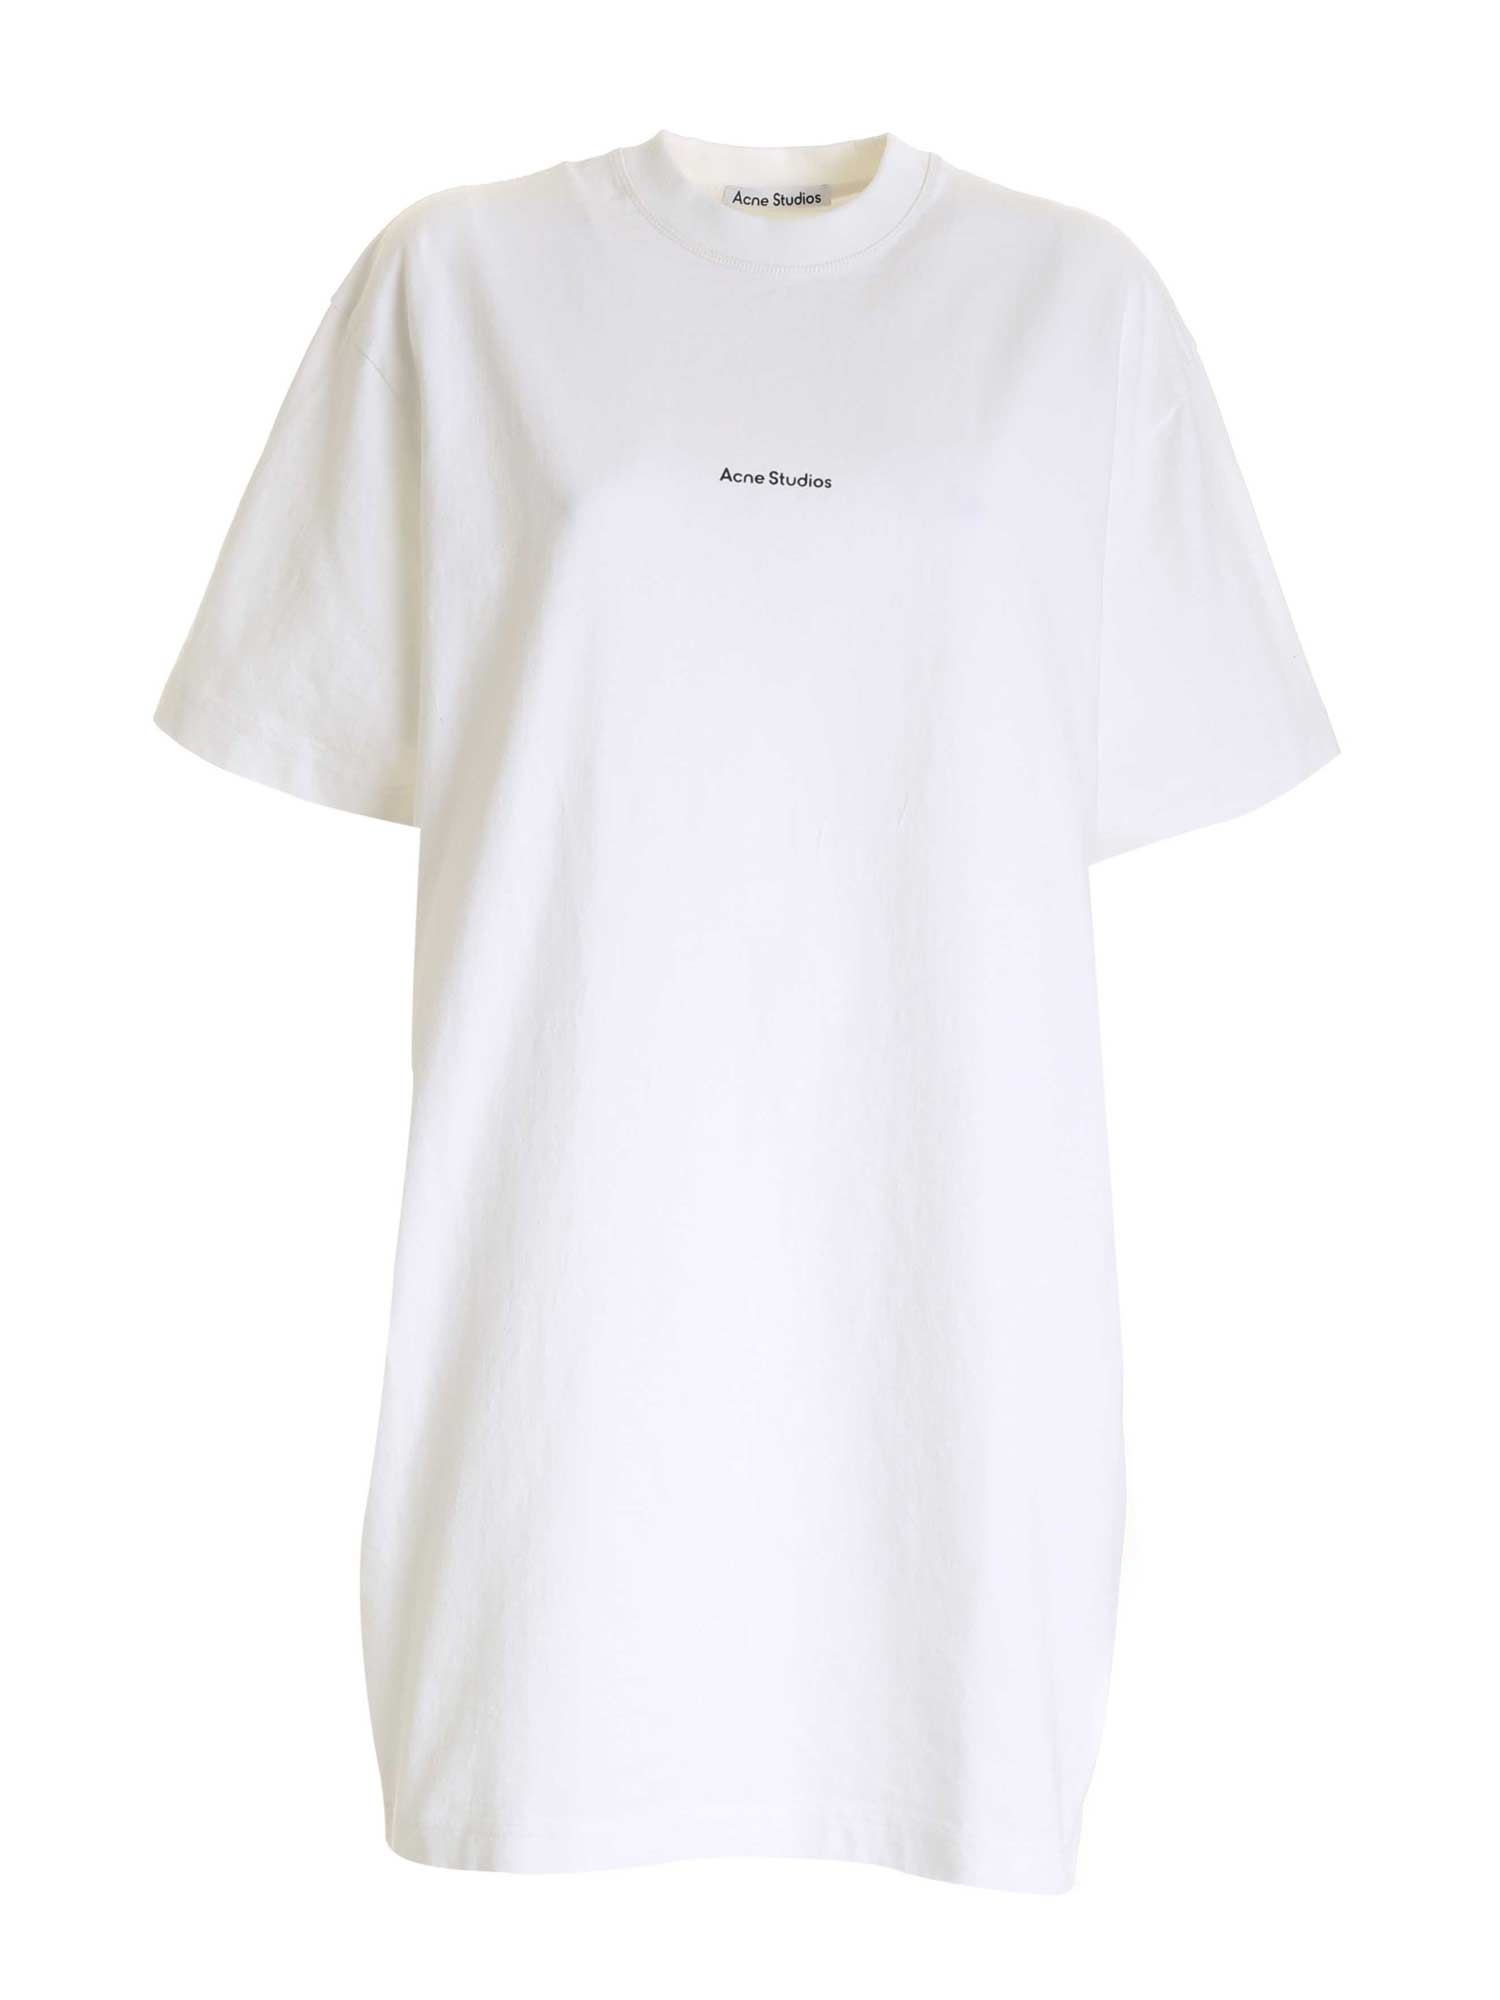 Acne Studios LOGO PRINT MAXI T-SHIRT IN WHITE